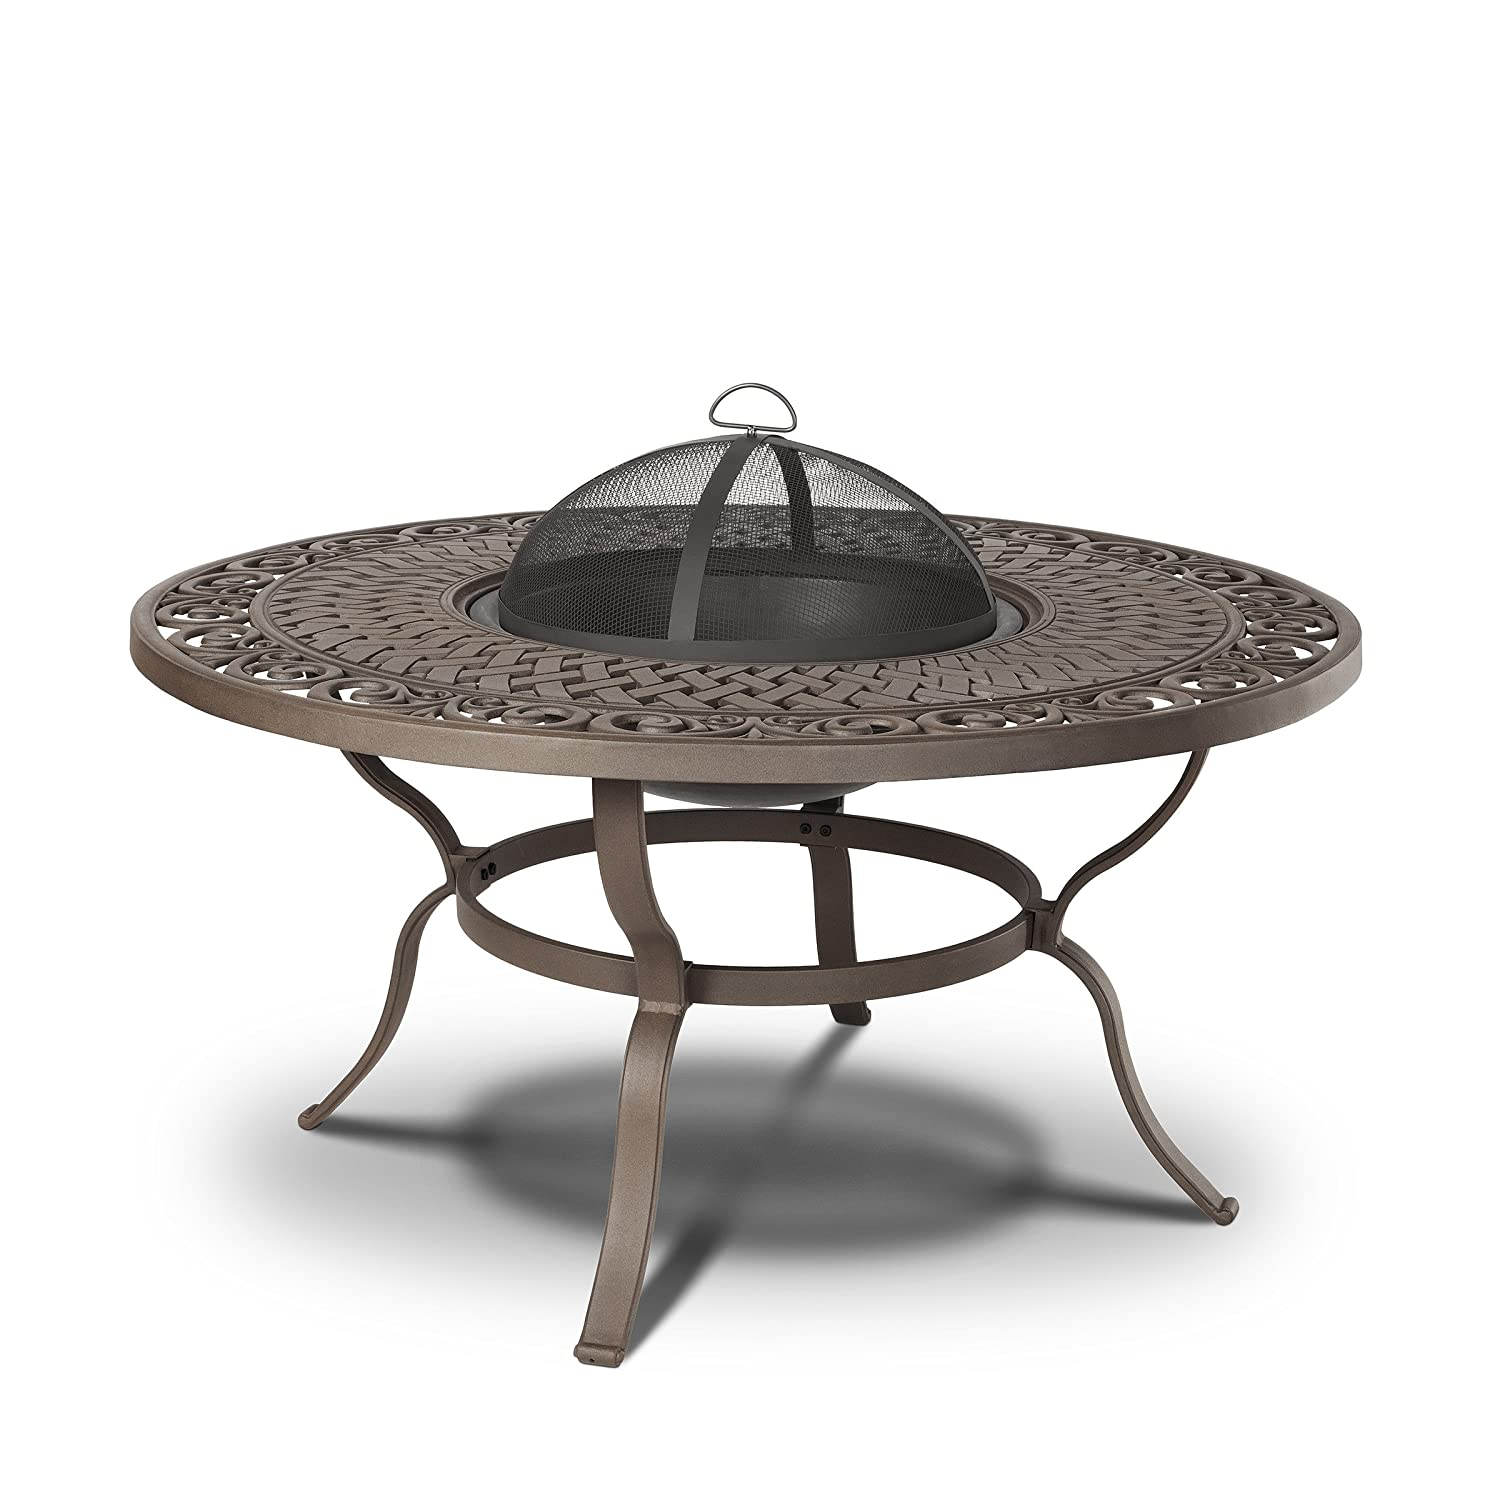 Marvelous Wood Fire Pit Table   Amazon.com: Real Flame Florence Wood Burning Fire Table: Garden U0026 Outdoor